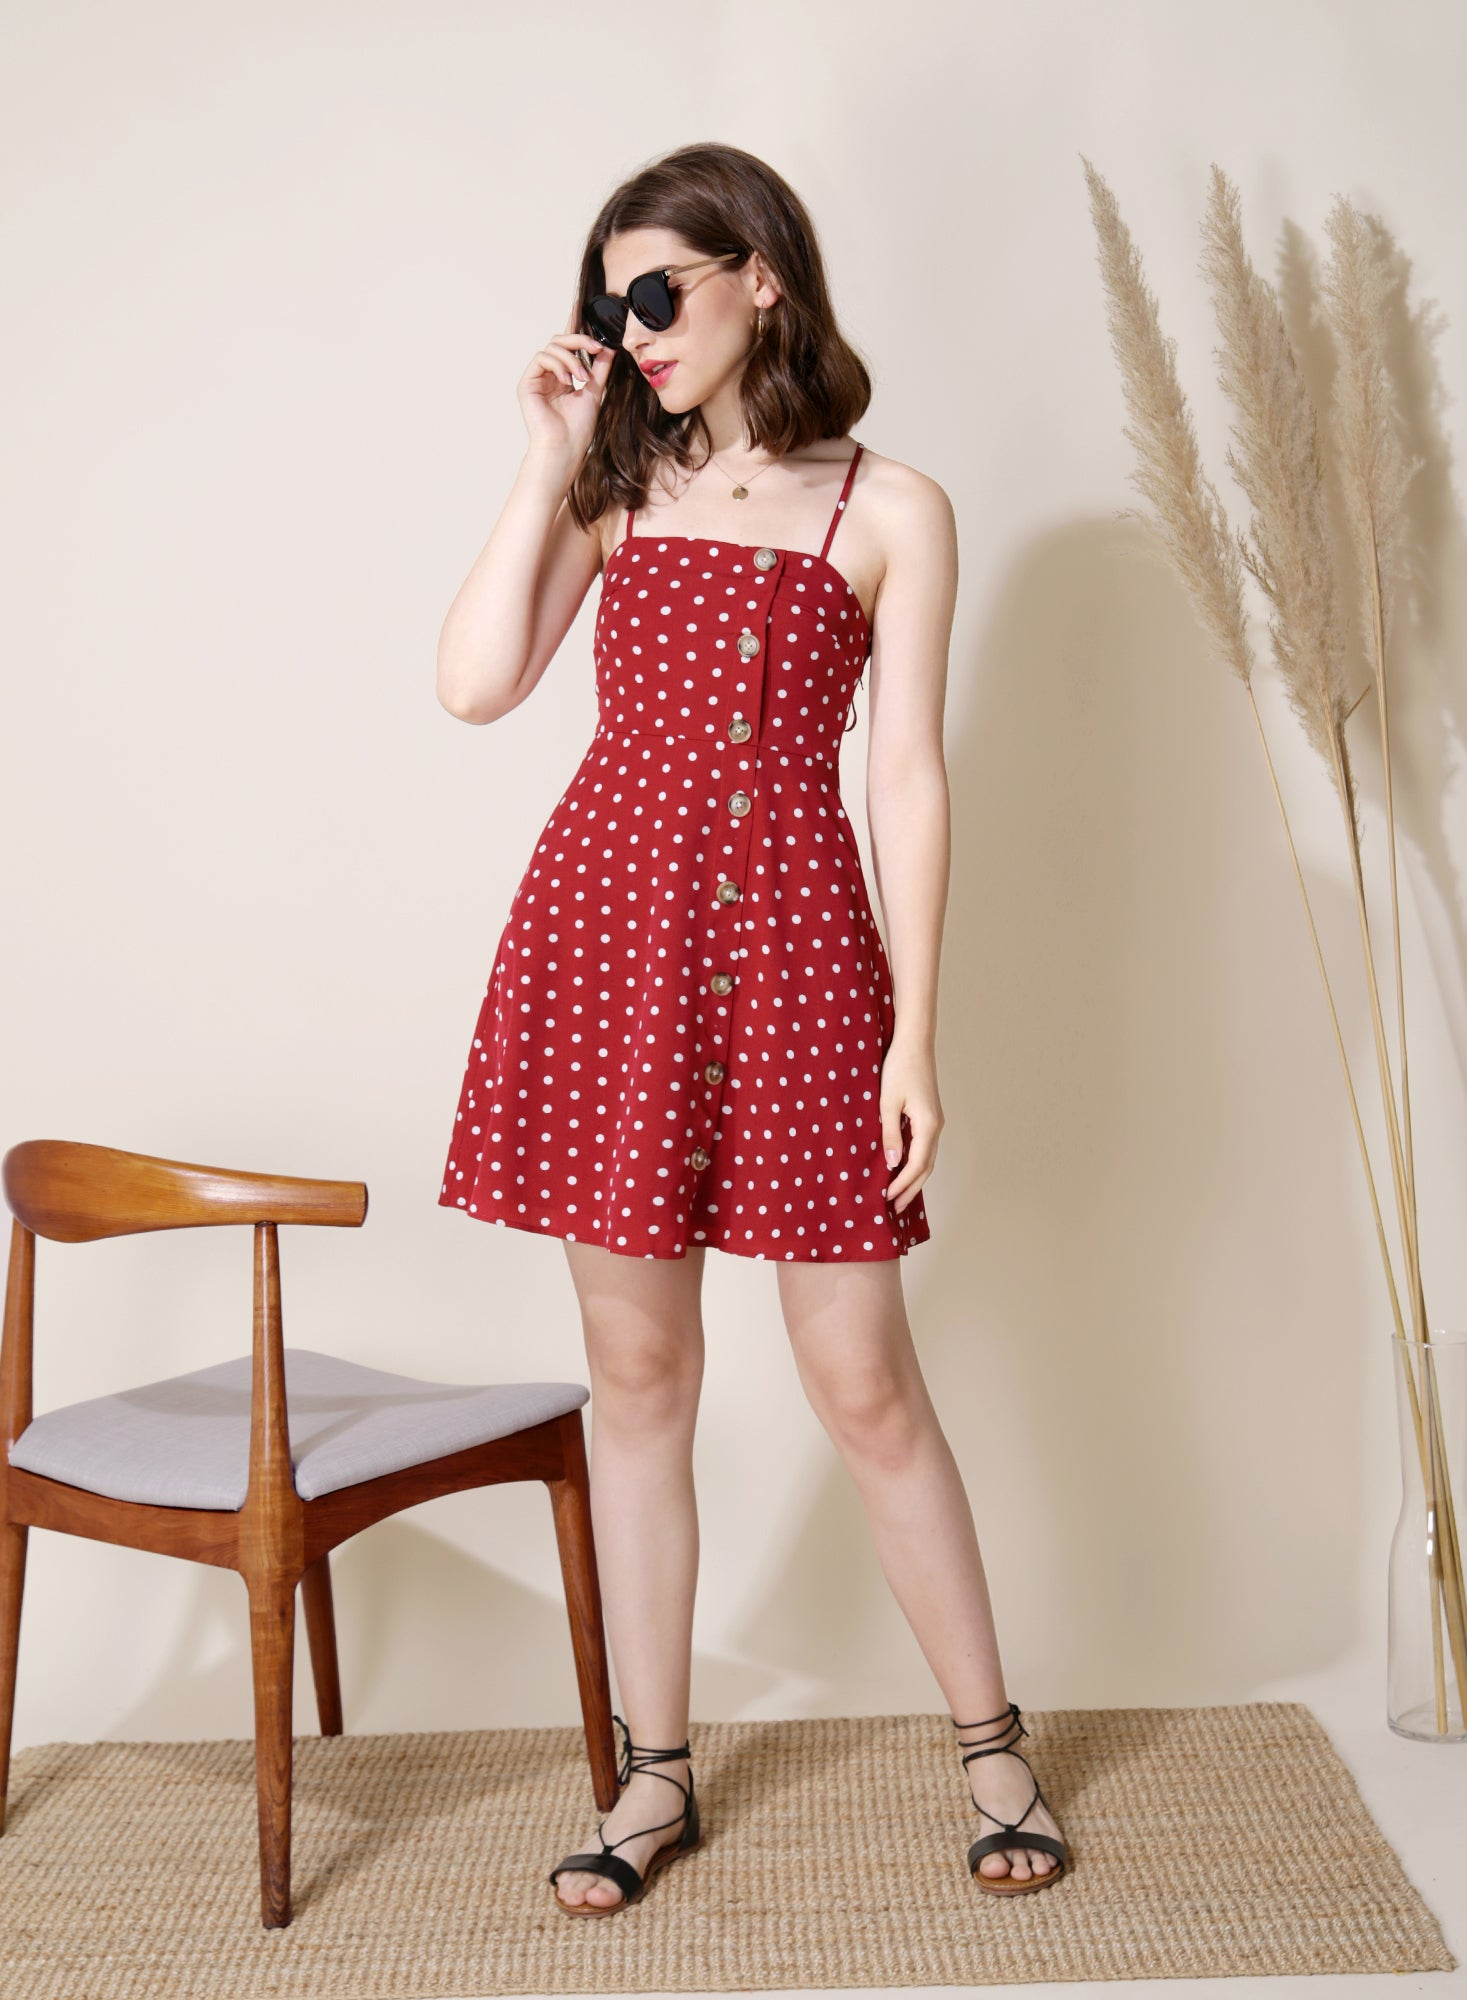 Leisure Polka Dot Flare Dress (Red) at $ 34.00 only sold at And Well Dressed Online Fashion Store Singapore